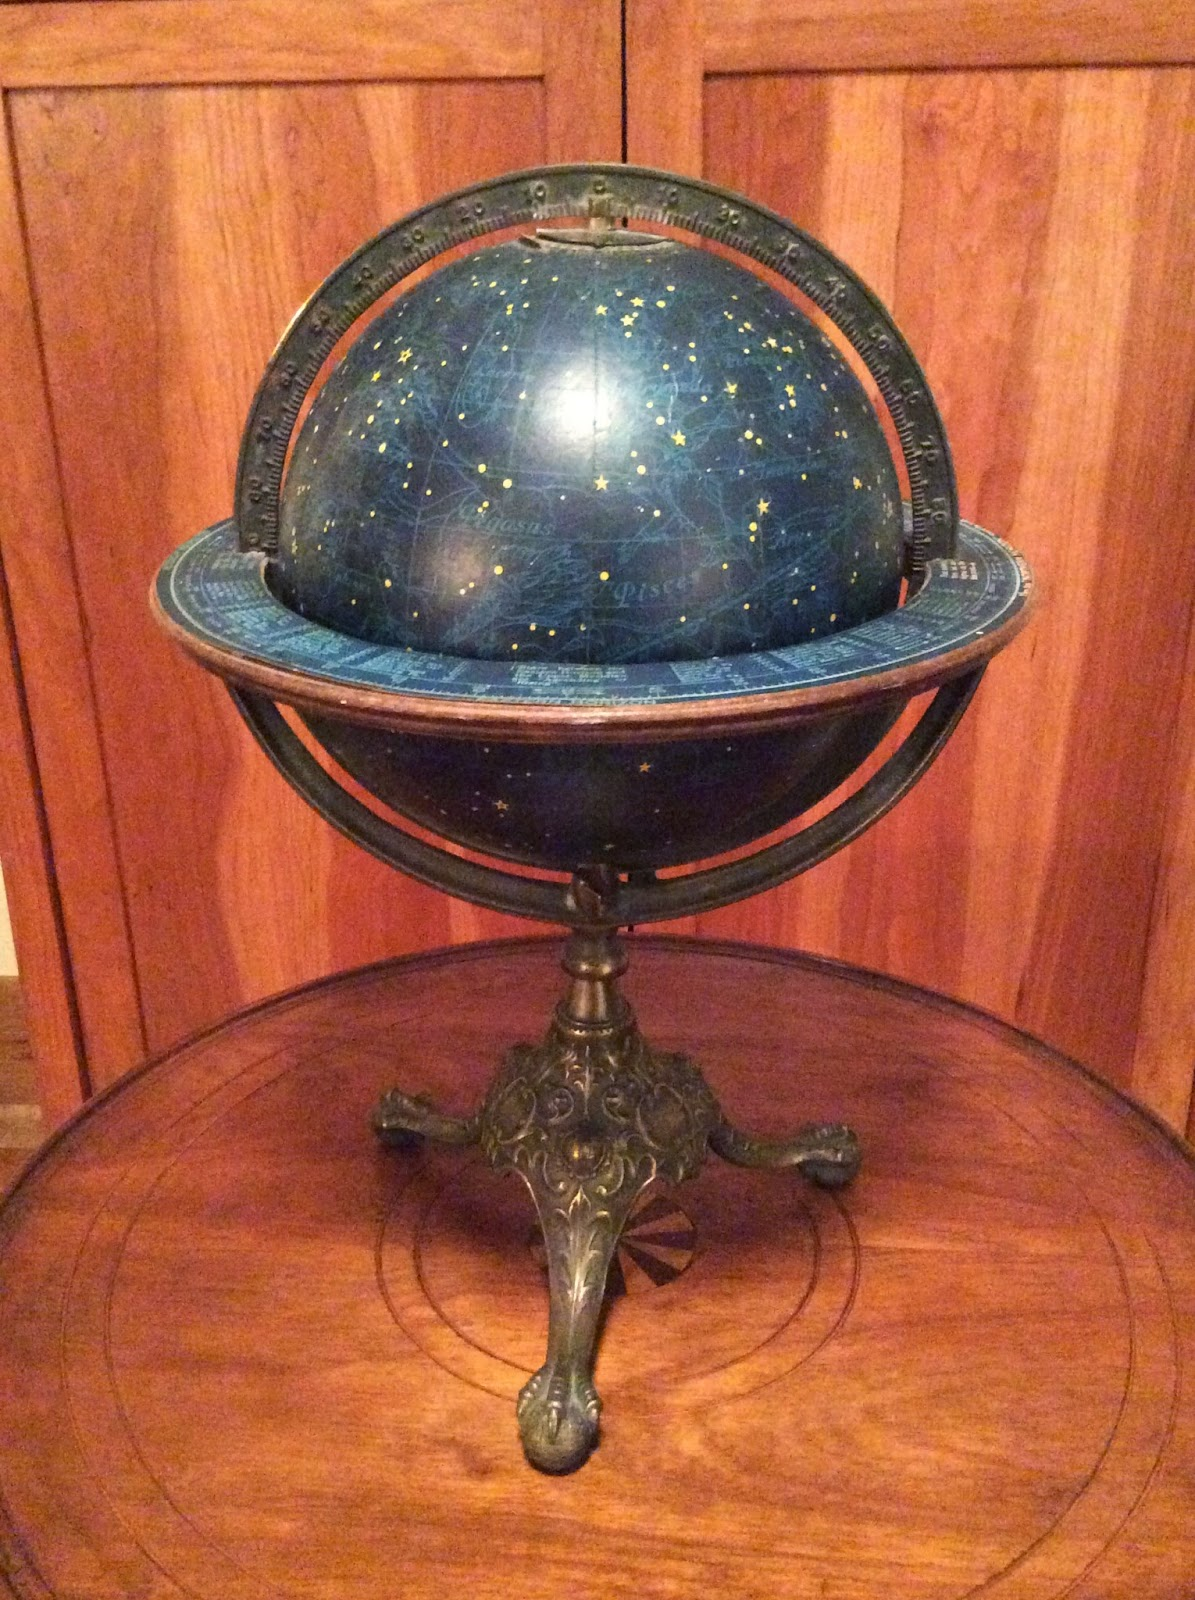 Collecting Antique And Vintage Globes The Celestial Globe